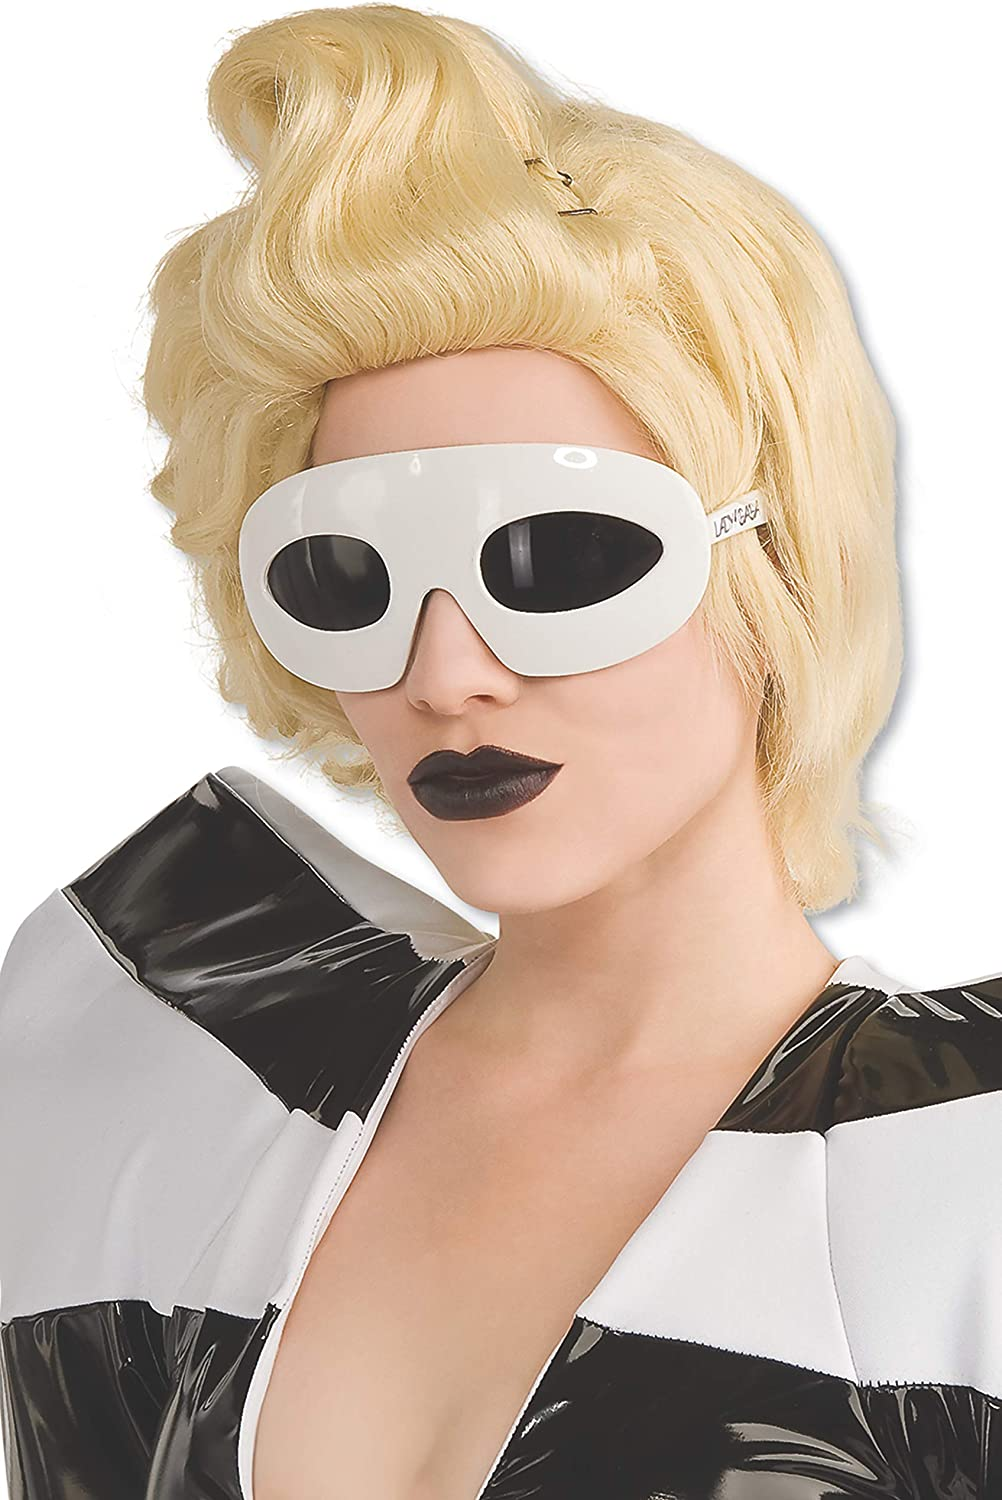 Lady Gaga glasses. (accesorio de disfraz): Amazon.es: Juguetes y ...